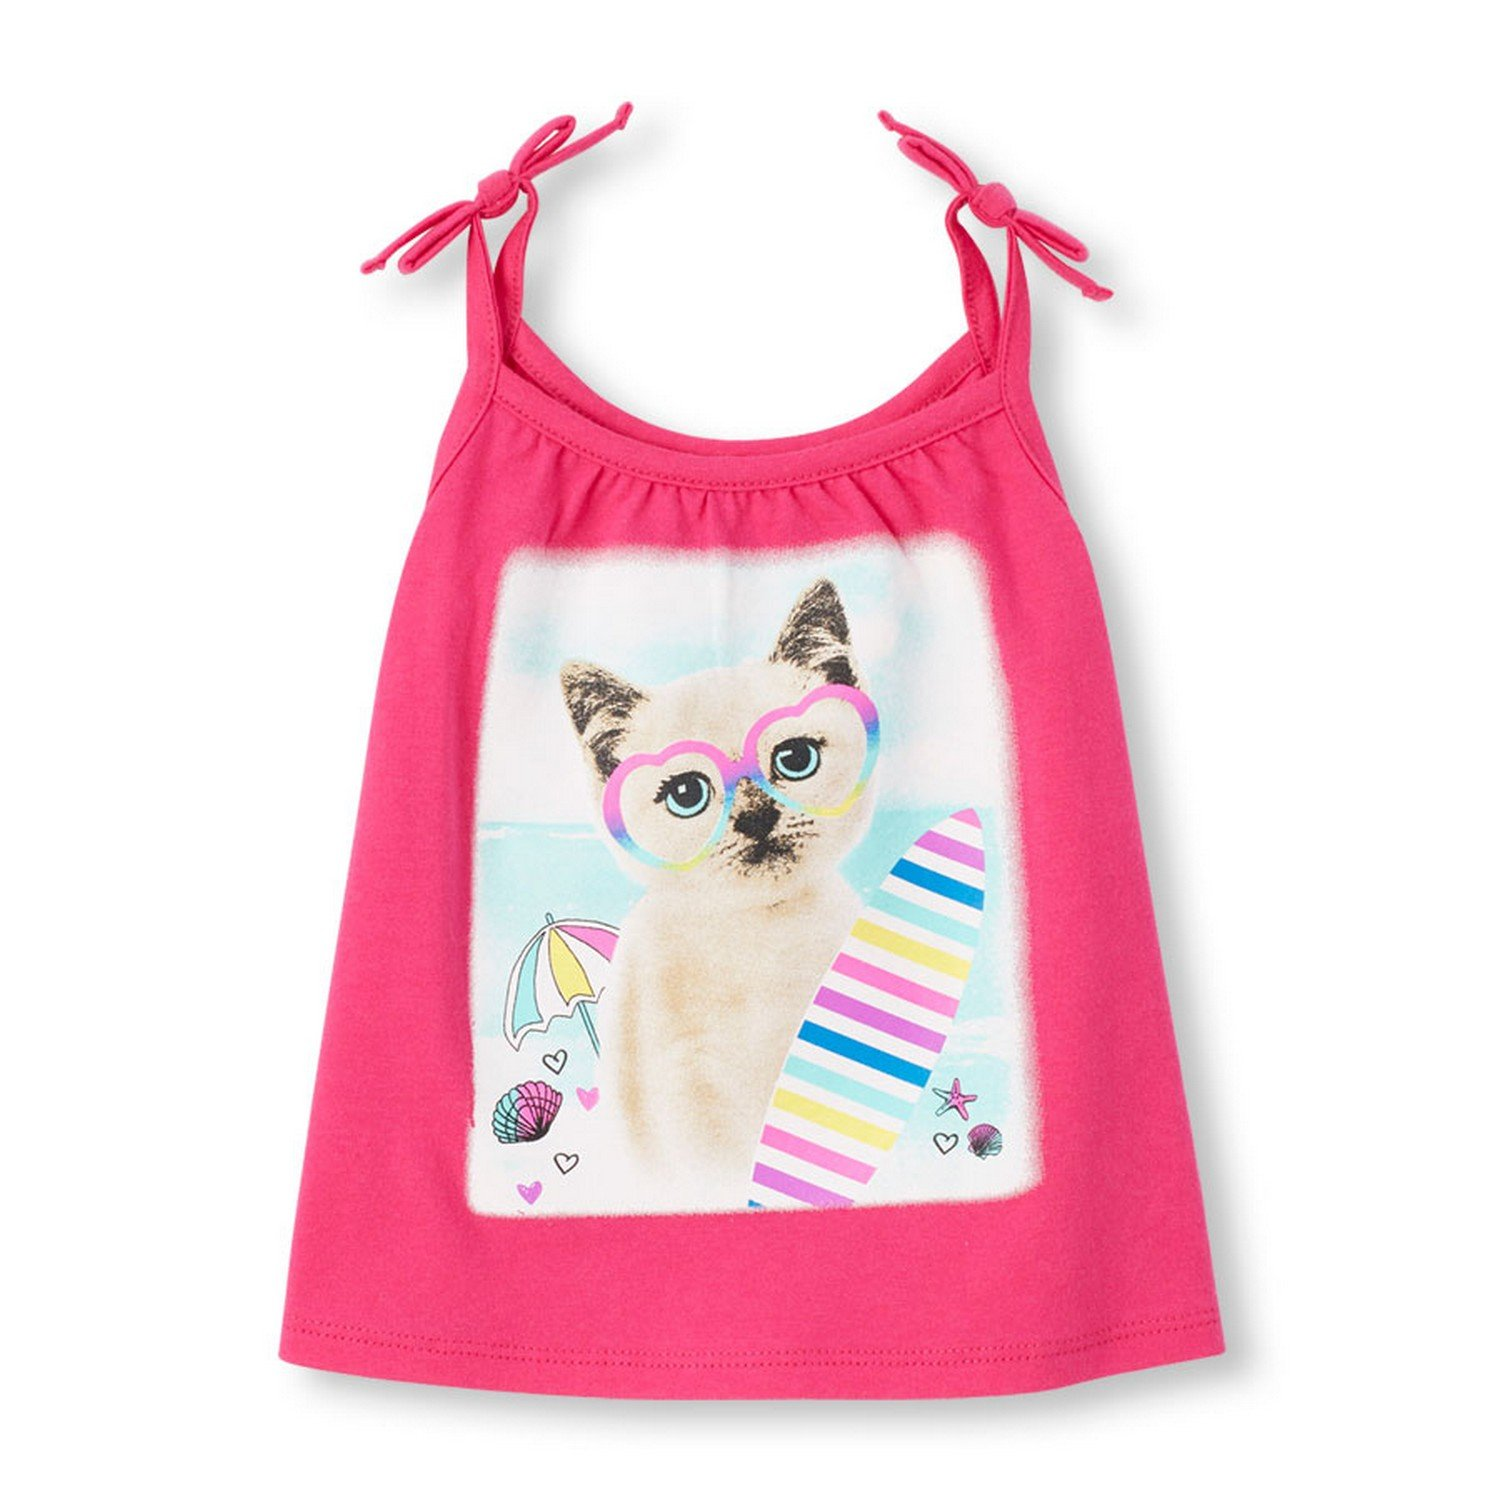 3a70fce613171 The Children s Place Girls  Sleeveless Tie-Strap Tank Top  (2063616 Watermelon 4Y)  Amazon.in  Clothing   Accessories